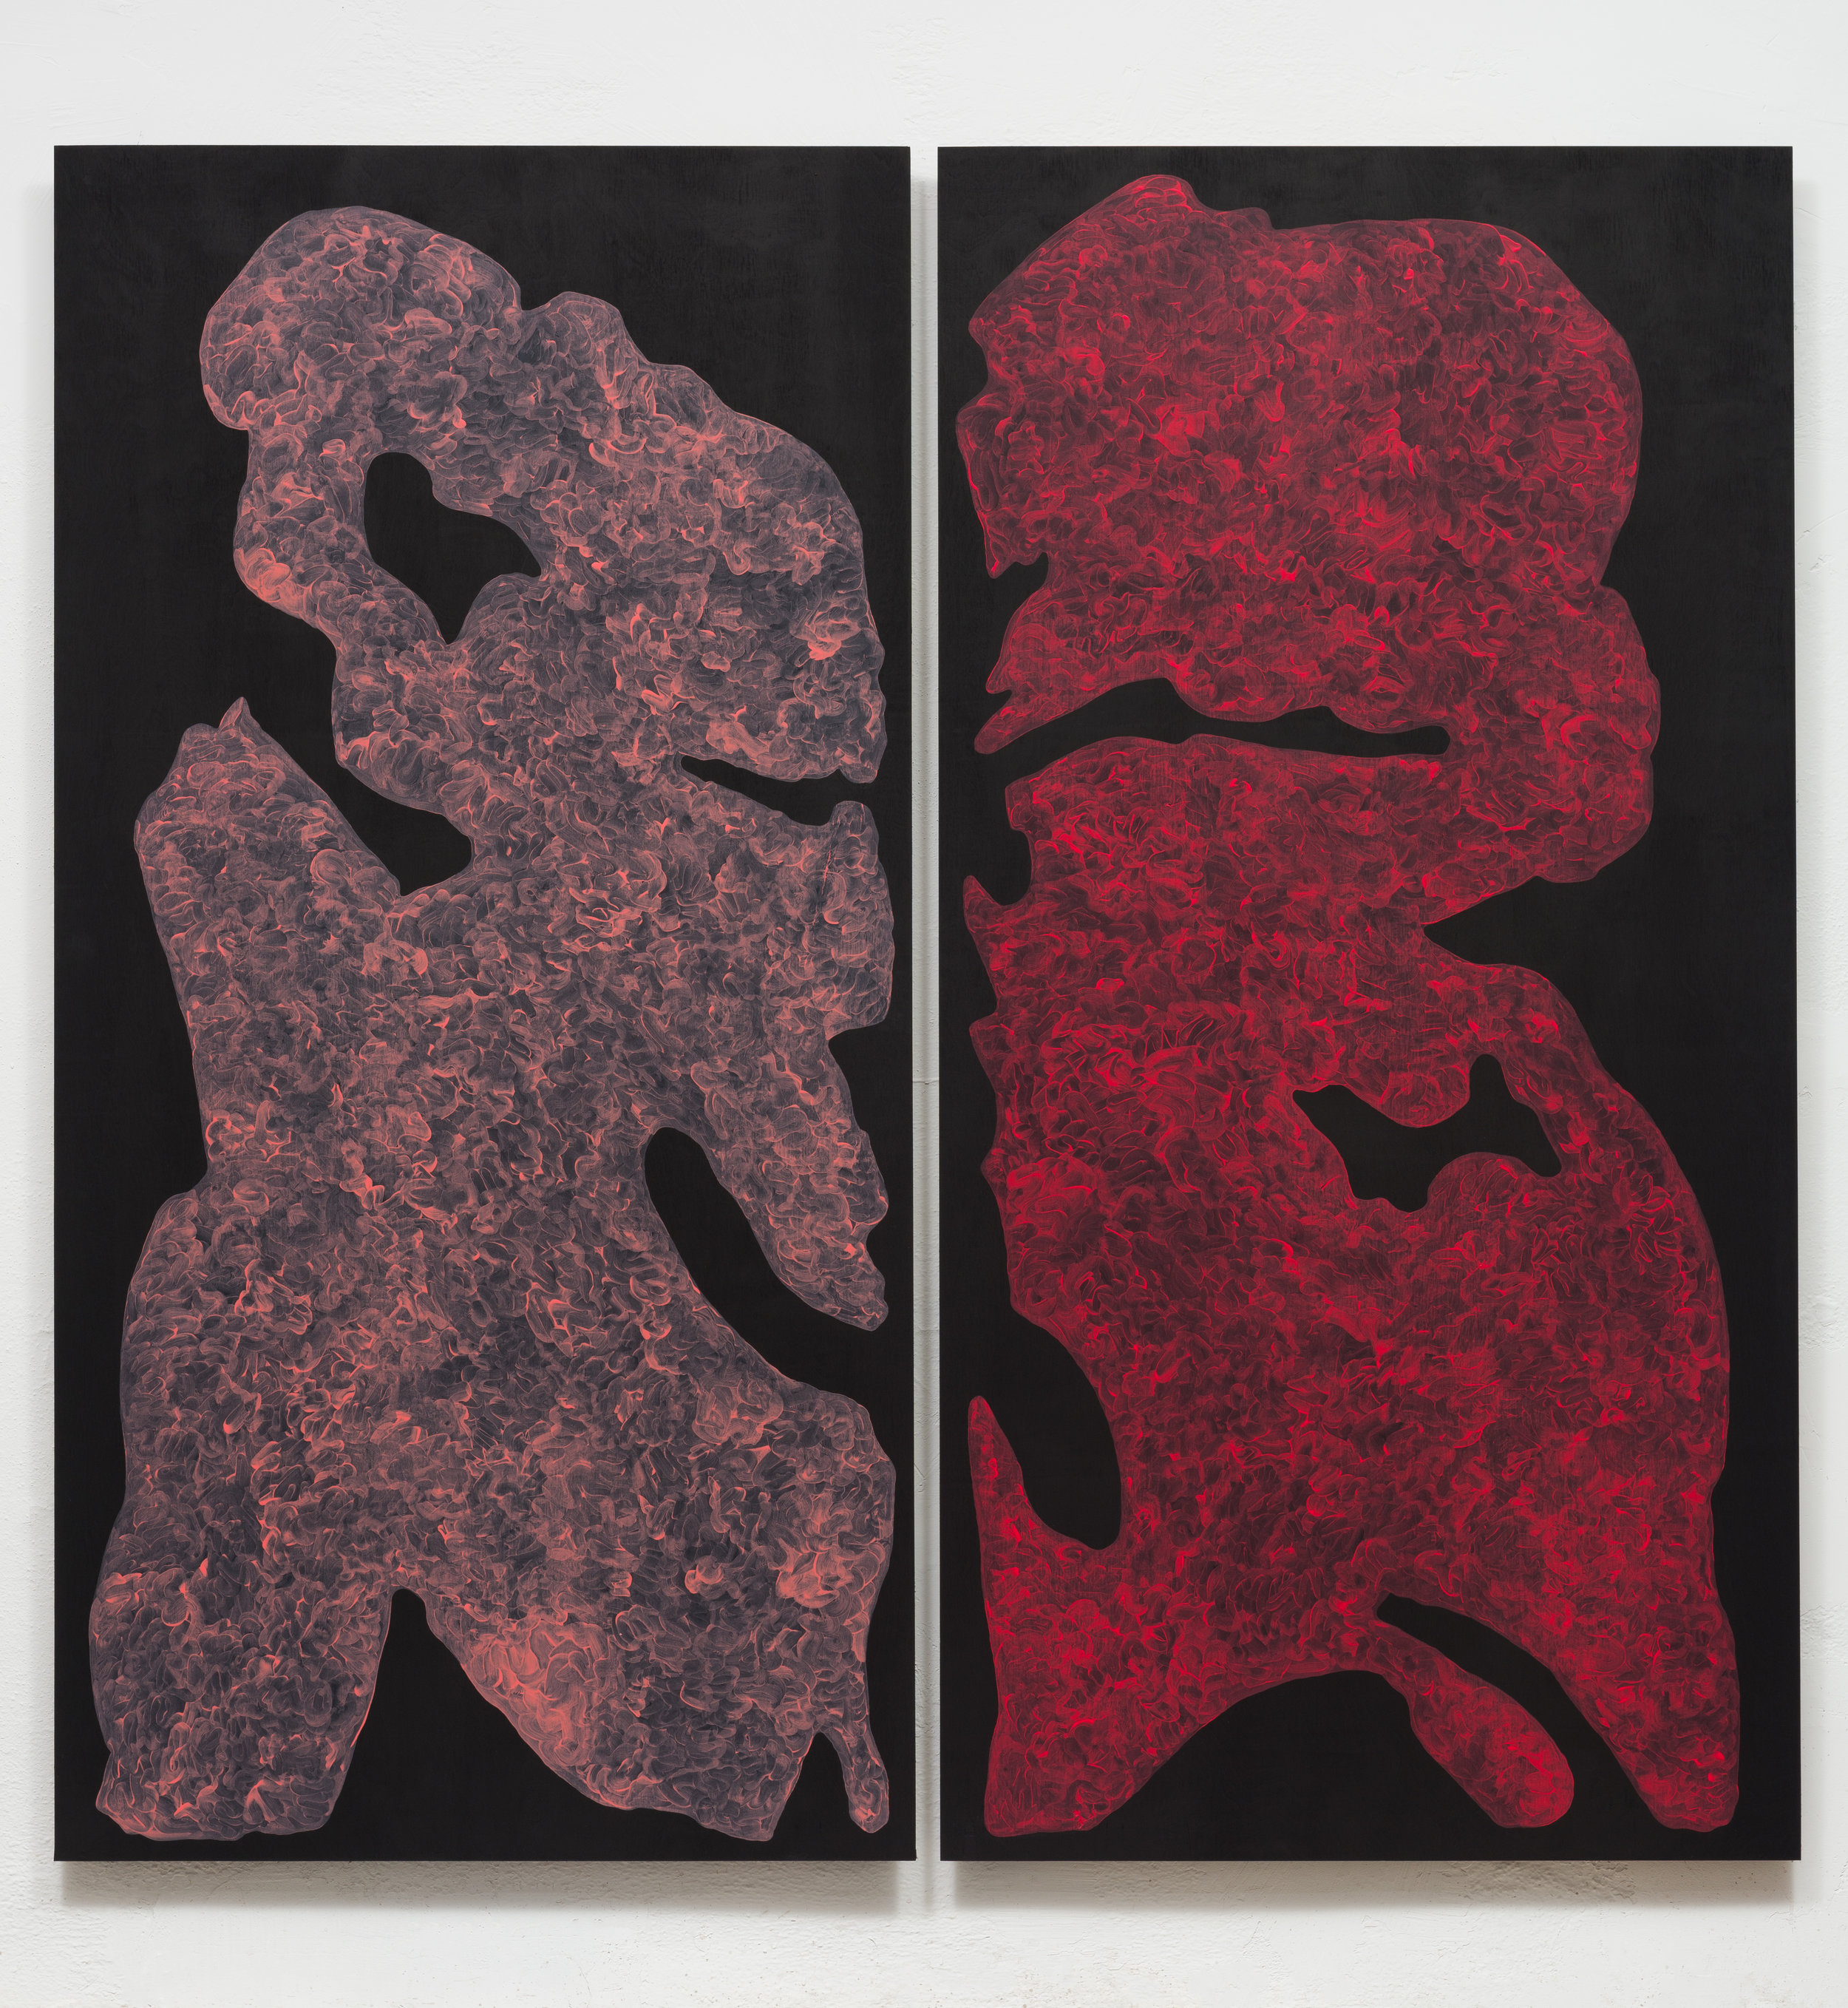 Monique Prieto,  Pink Set , 2017, acrylic on panel, 72.5 x 72.5 inches (diptych)